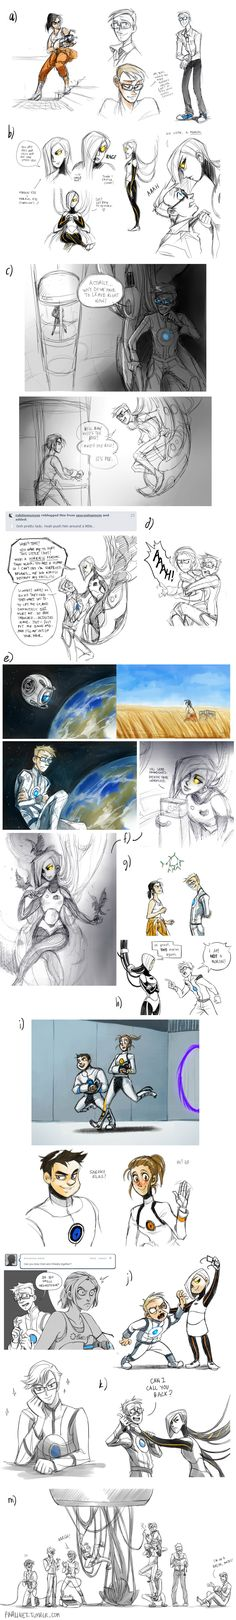 33 best portal images on pinterest videogames aperture science portal 2 sketchdump by pinali on deviantart malvernweather Gallery